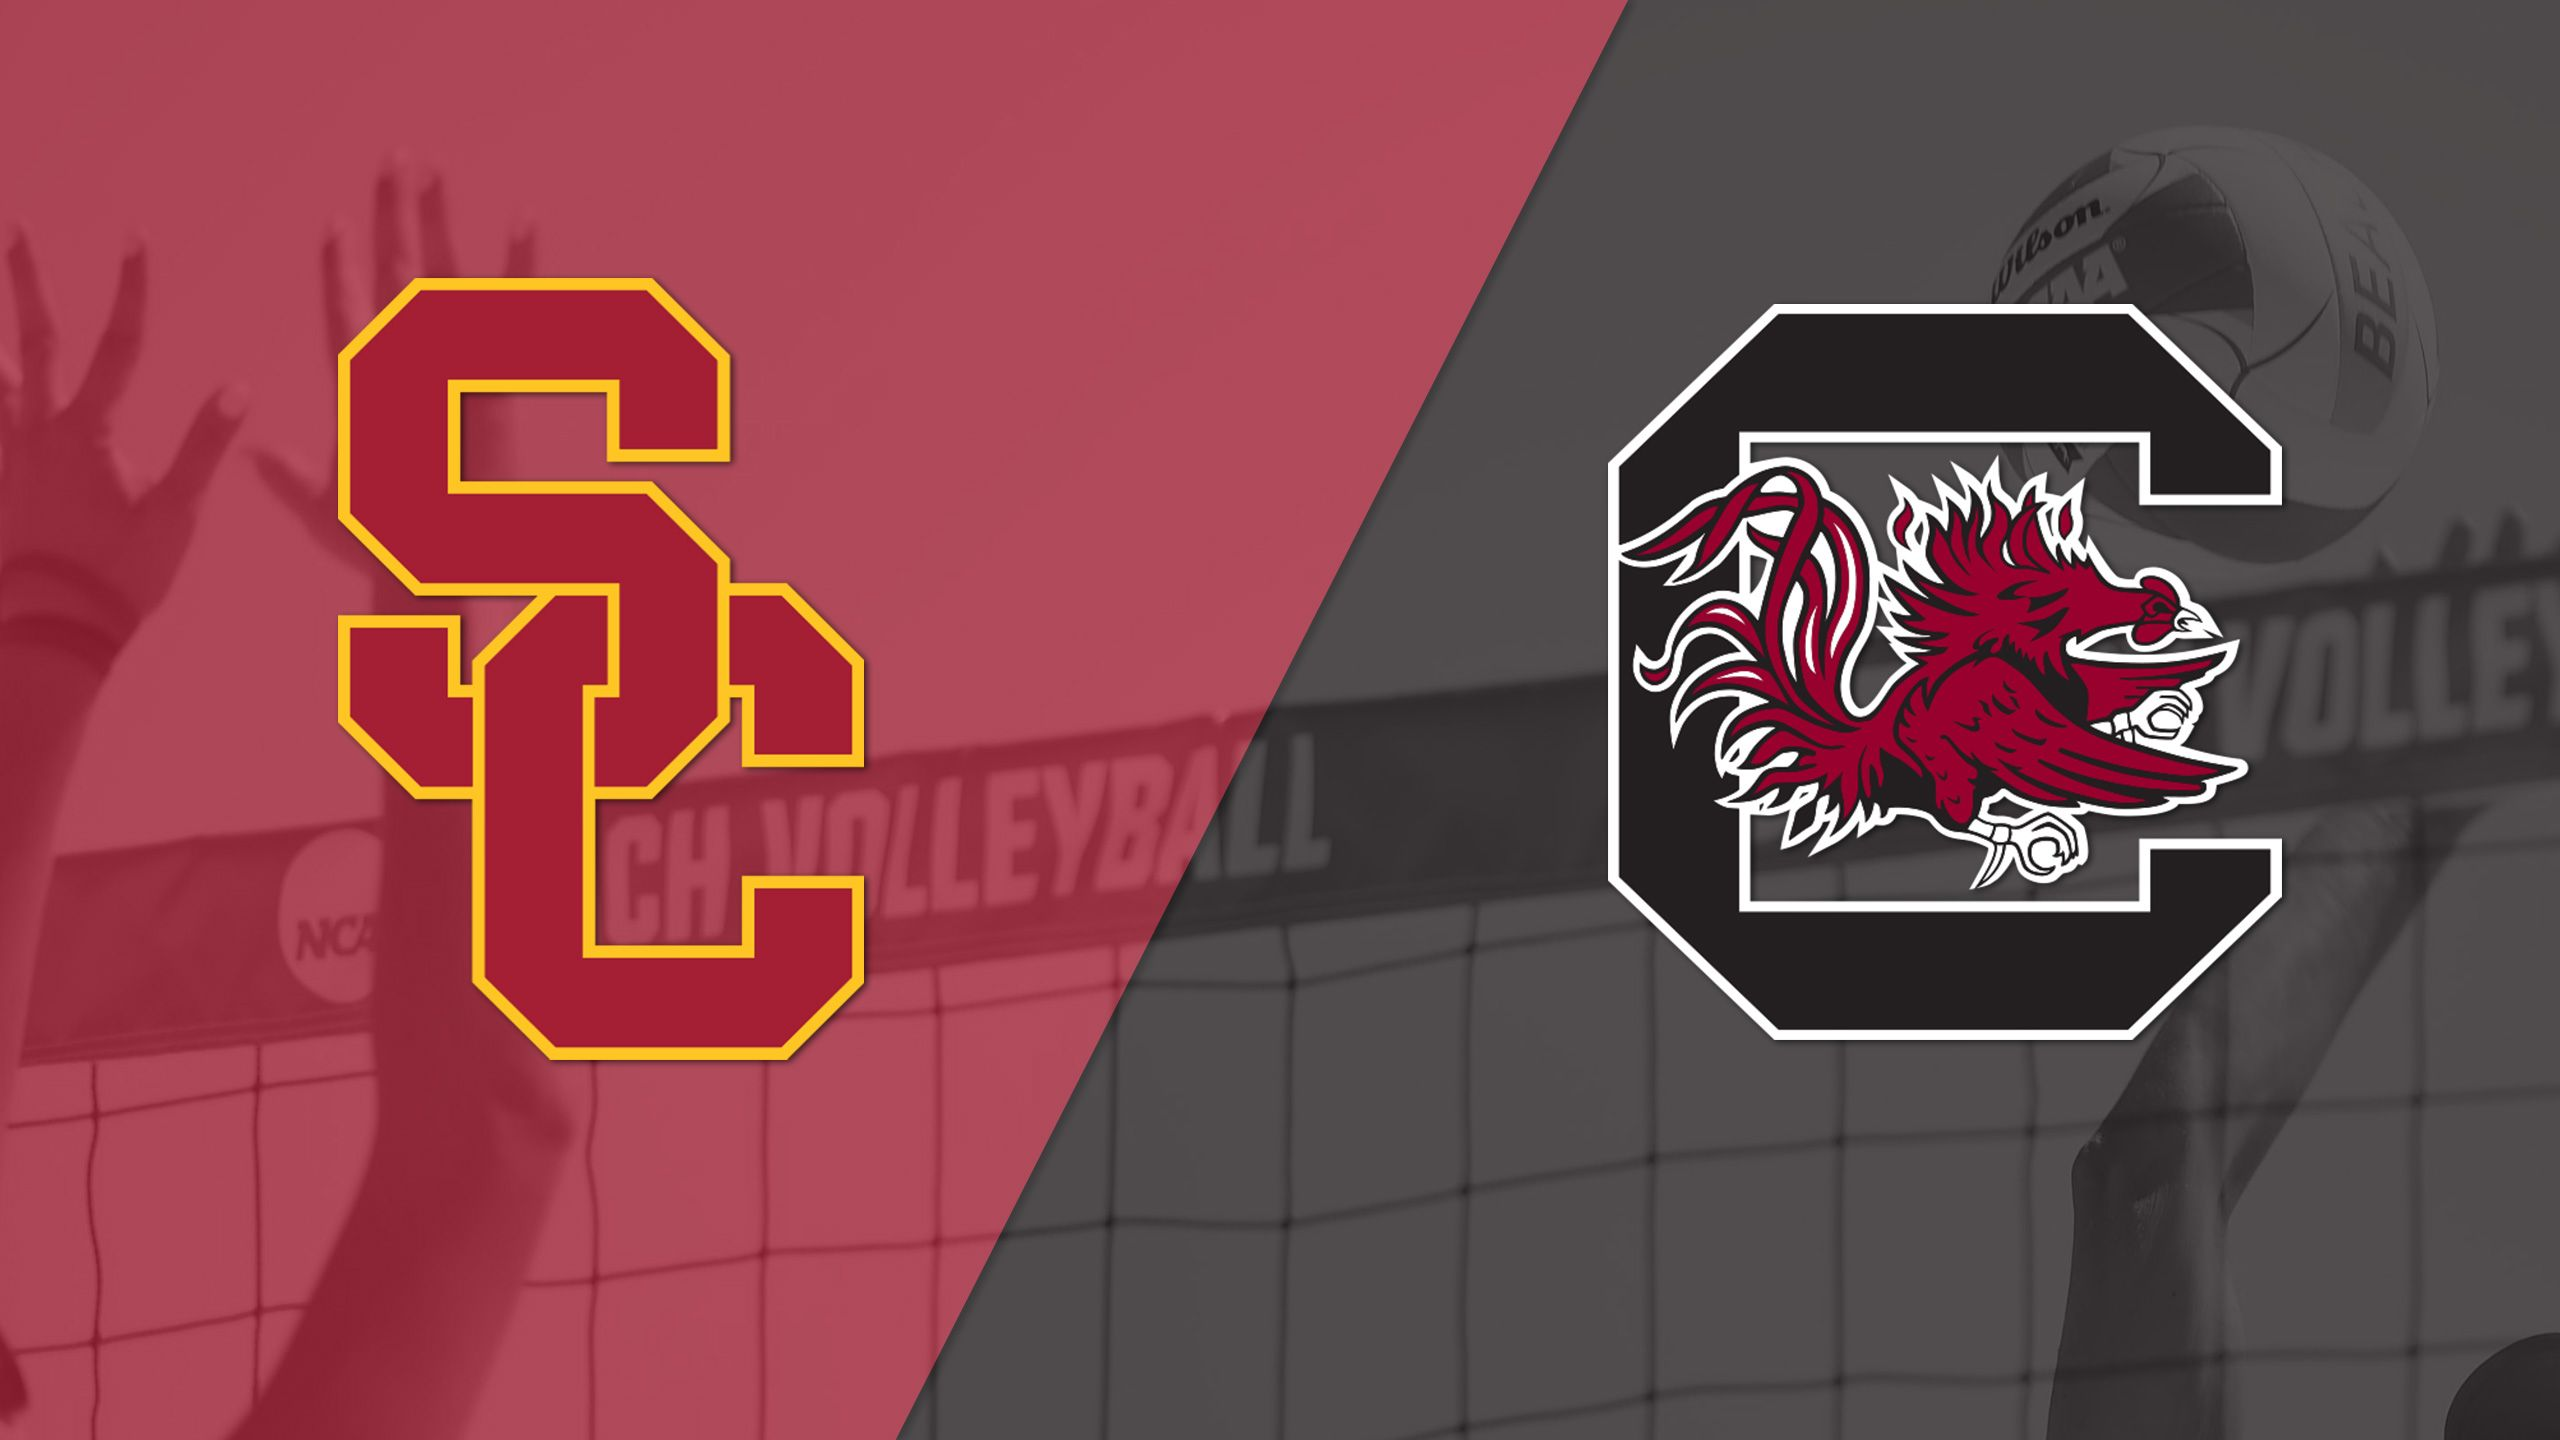 USC vs. South Carolina (Beach Volleyball)